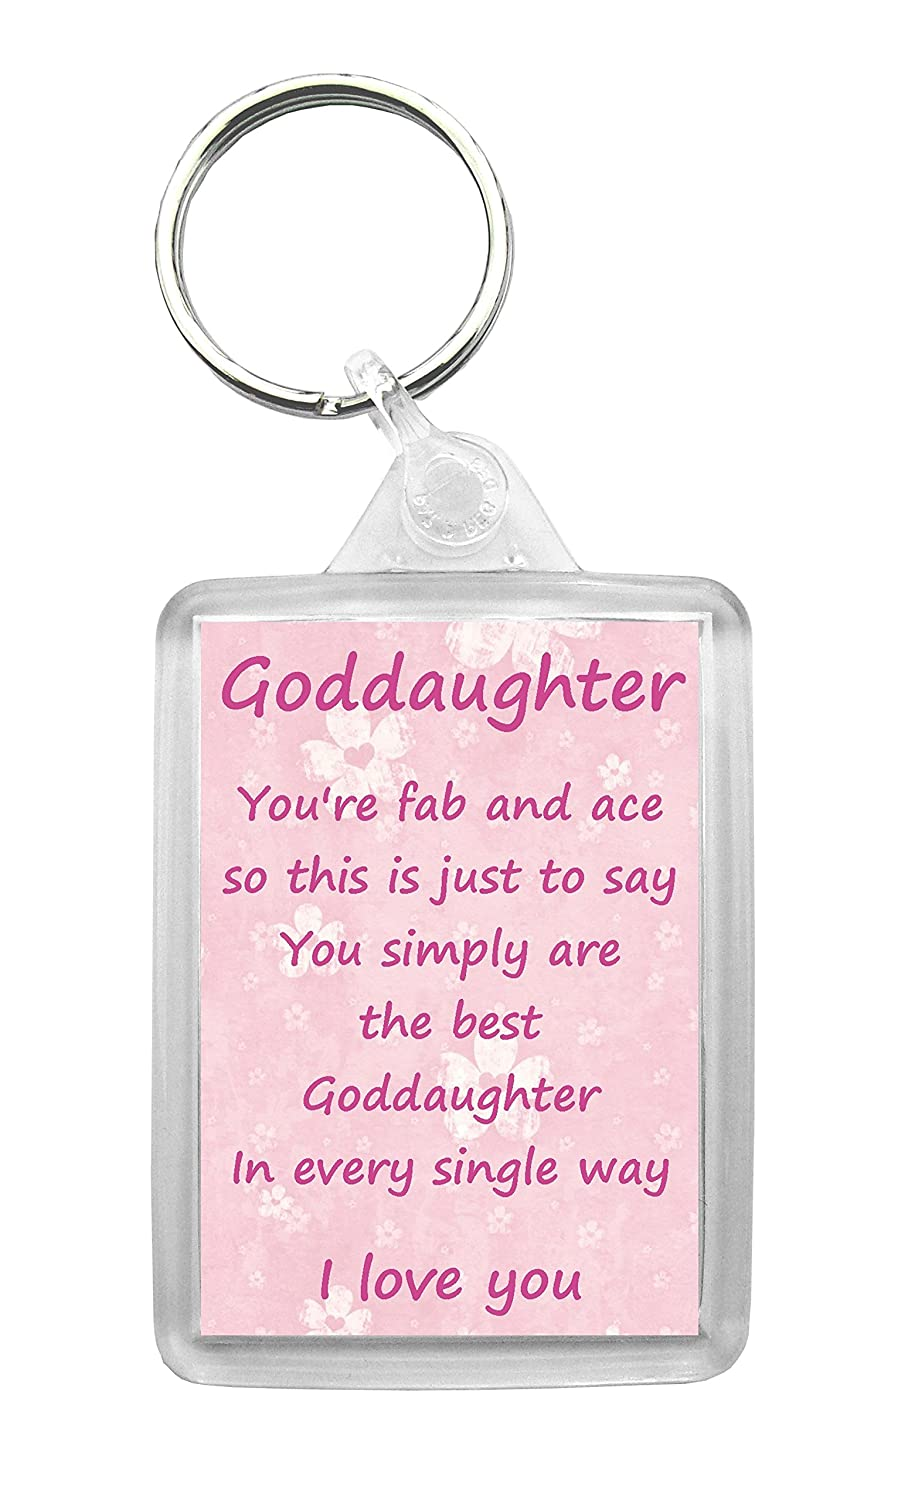 Goddaughter Keyring \'I Love You\' Poem Fun Novelty Gift: Amazon.co.uk ...